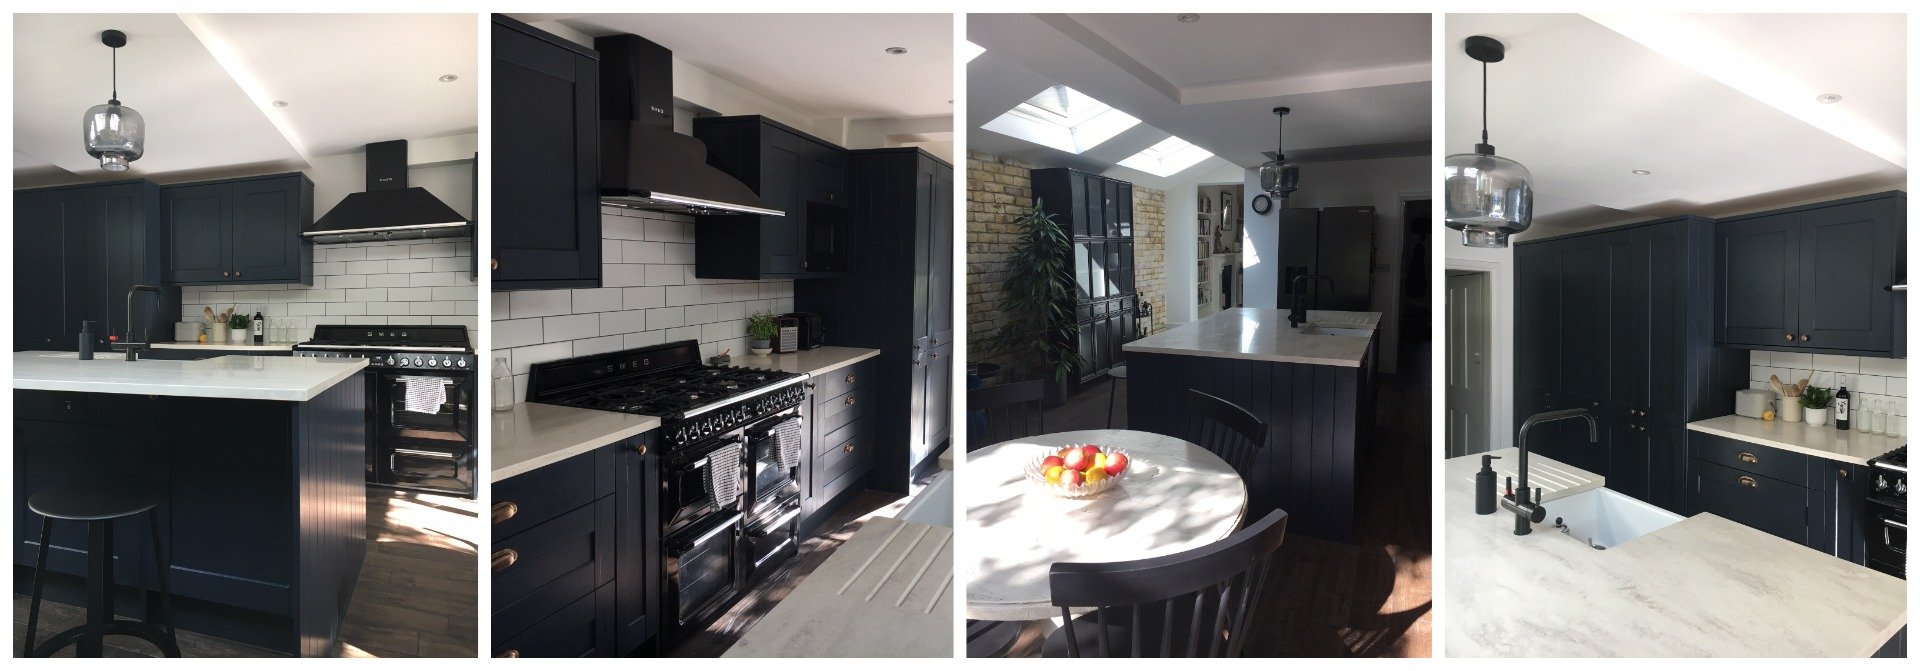 Latest kitchen installations